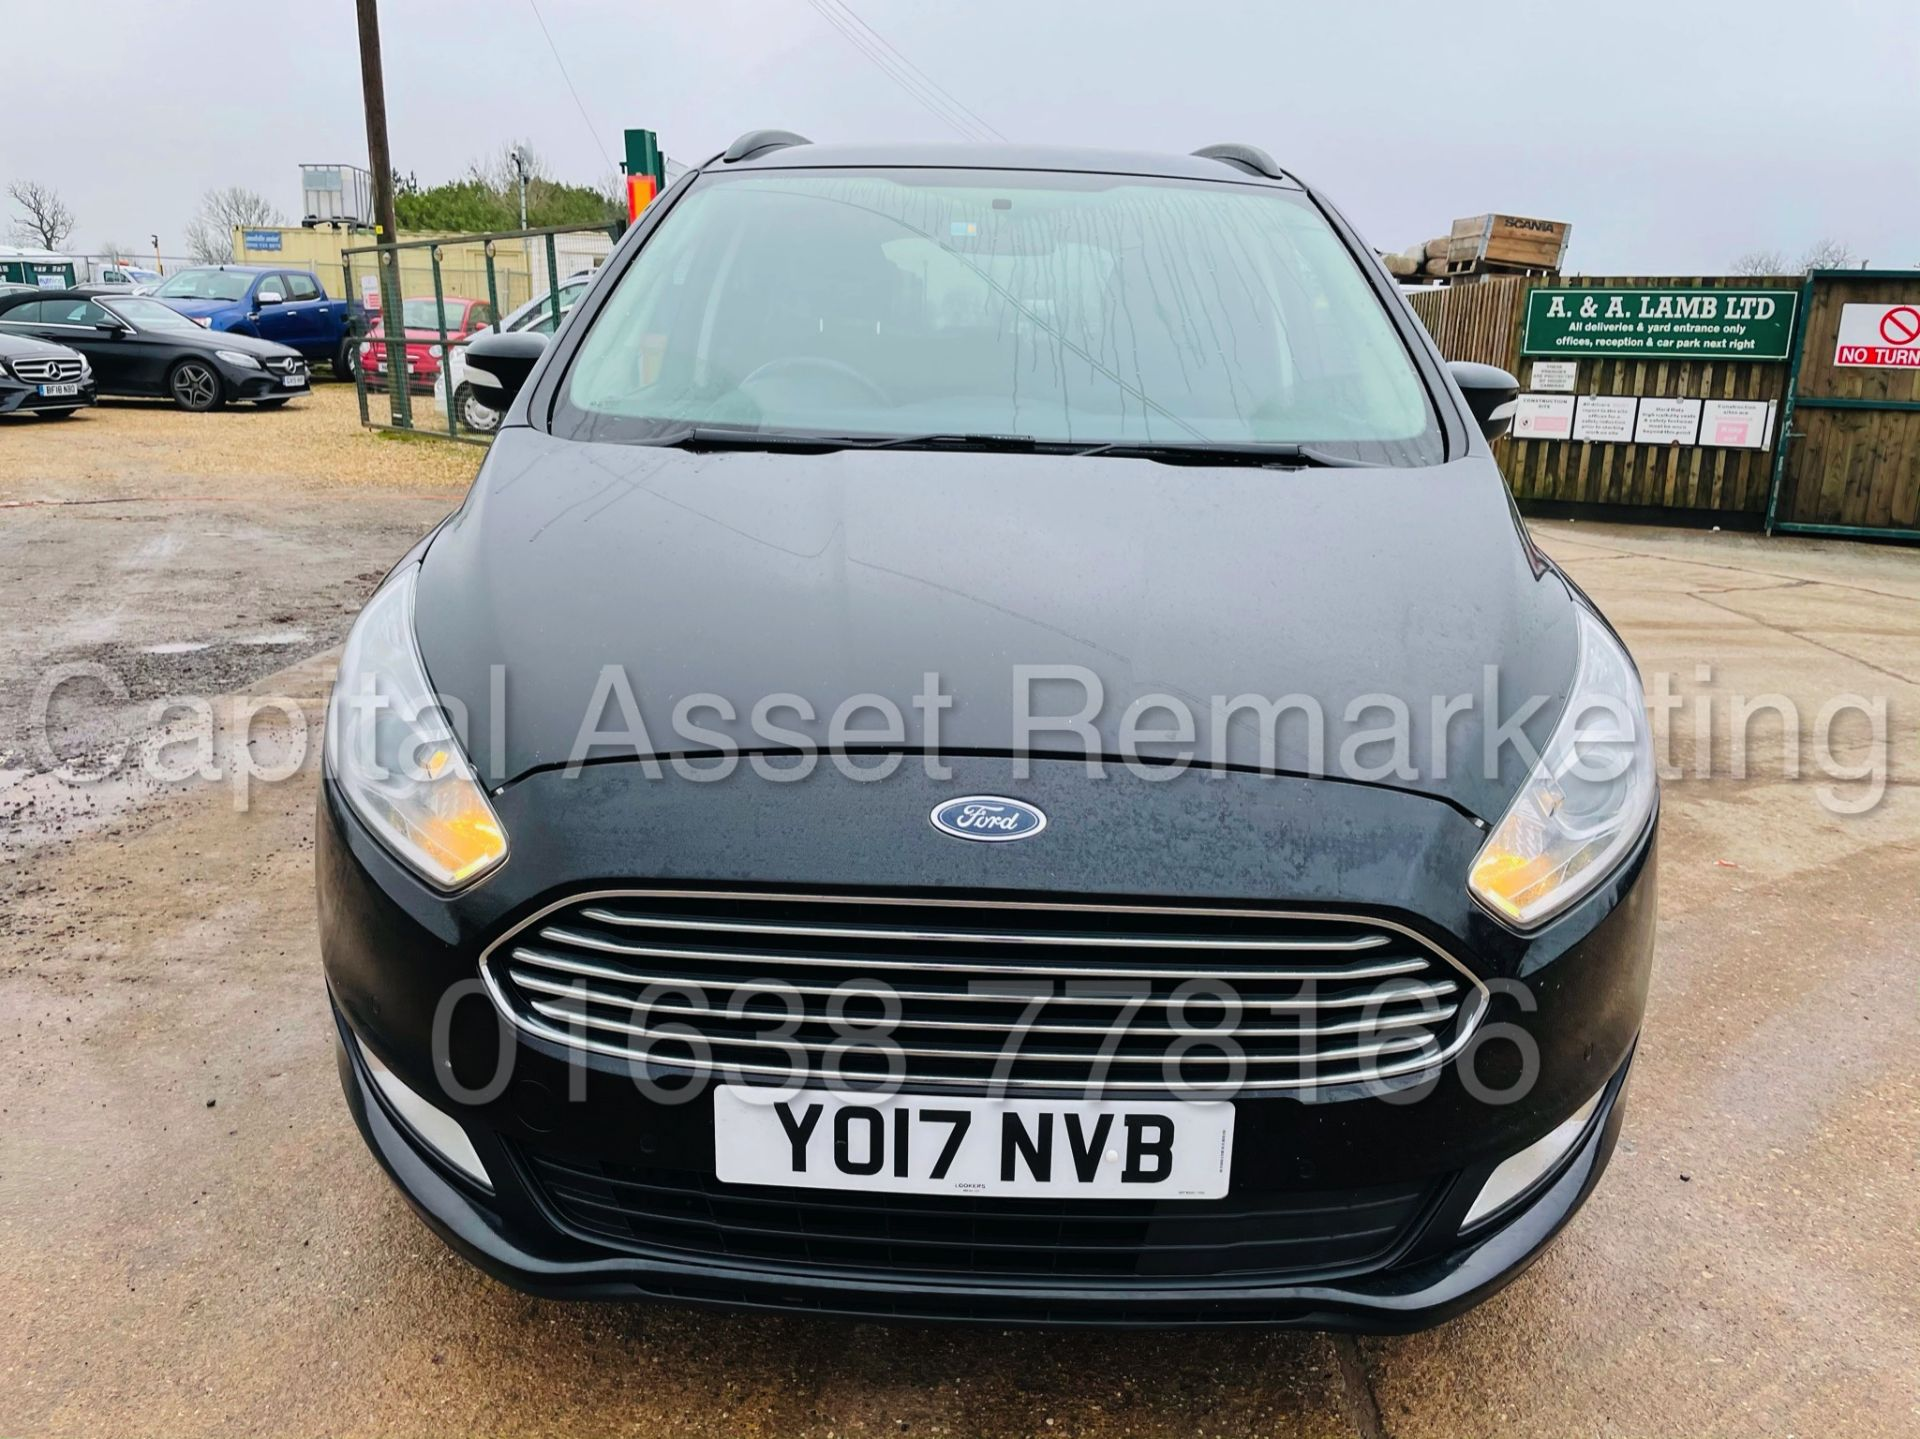 (On Sale) FORD GALAXY *ZETEC EDITION* 7 SEATER MPV (2017 - EURO 6) '2.0 TDCI - AUTO' (1 OWNER) - Image 4 of 48